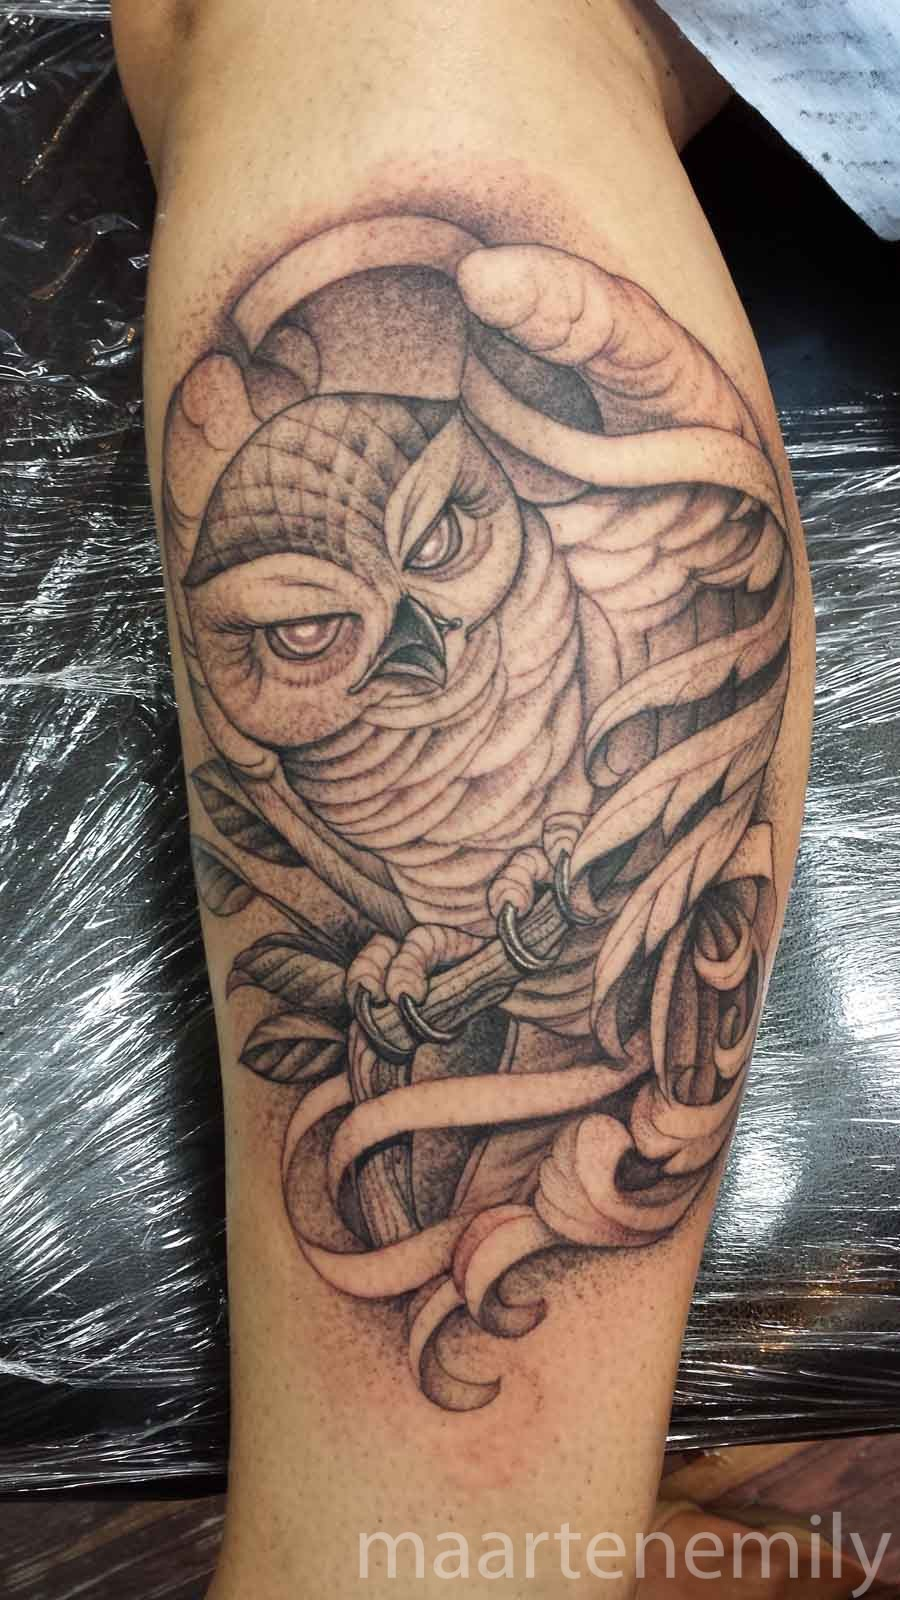 tattoos design by maarten 1 needle owl in the wind